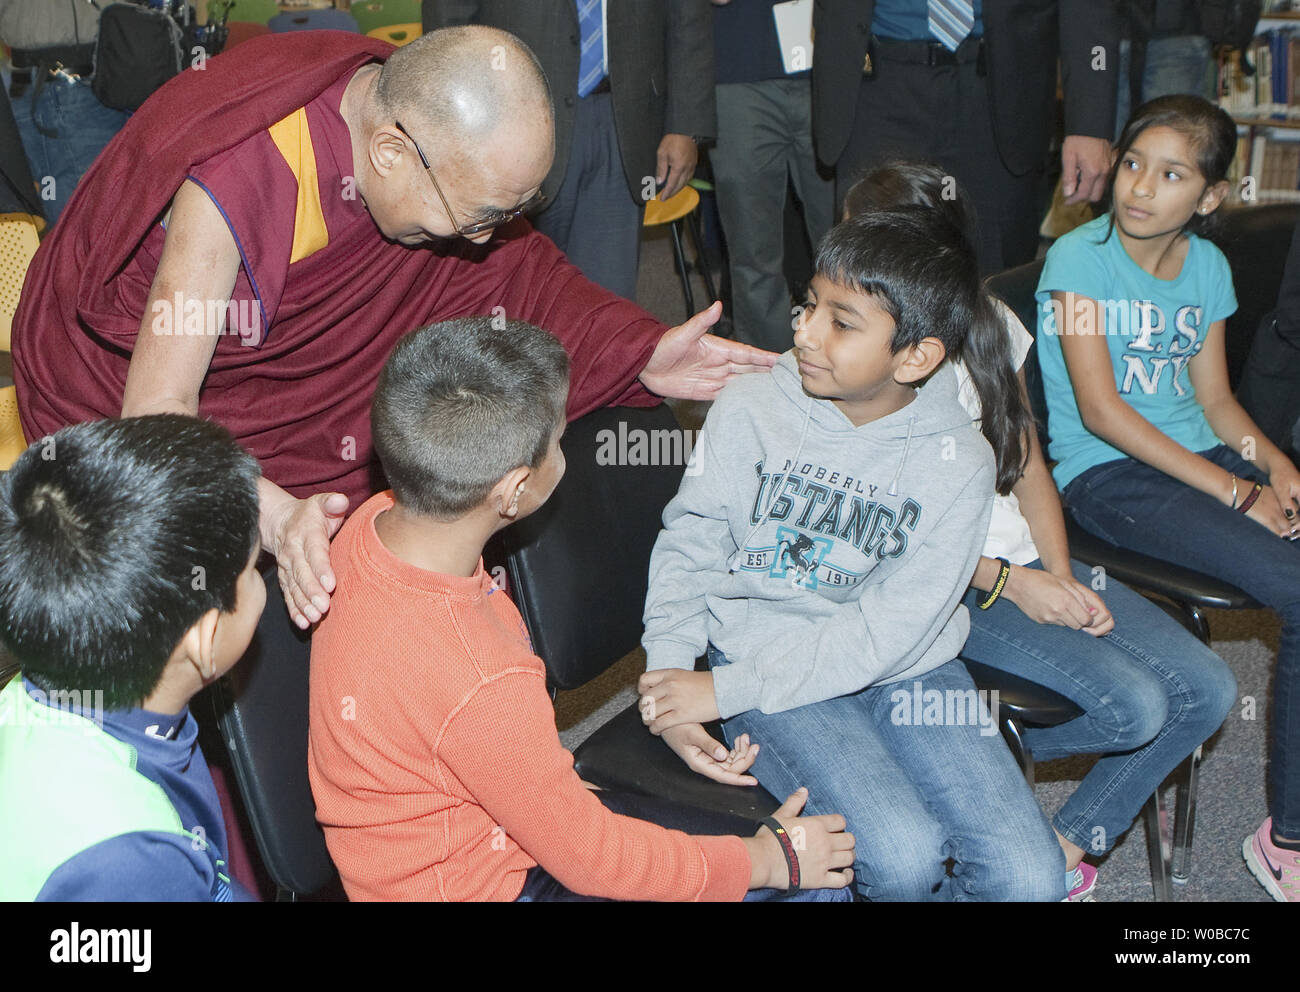 The Dalai Lama greets children as he arrives for his Heart-Mind Youth Dialogue with teachers and students at John Oliver Secondary School in Vancouver, British Columbia, October 21, 2014. The Dalai Lama will be holding meetings over several days during this Vancouver visit.  UPI/Heinz Ruckemann - Stock Image